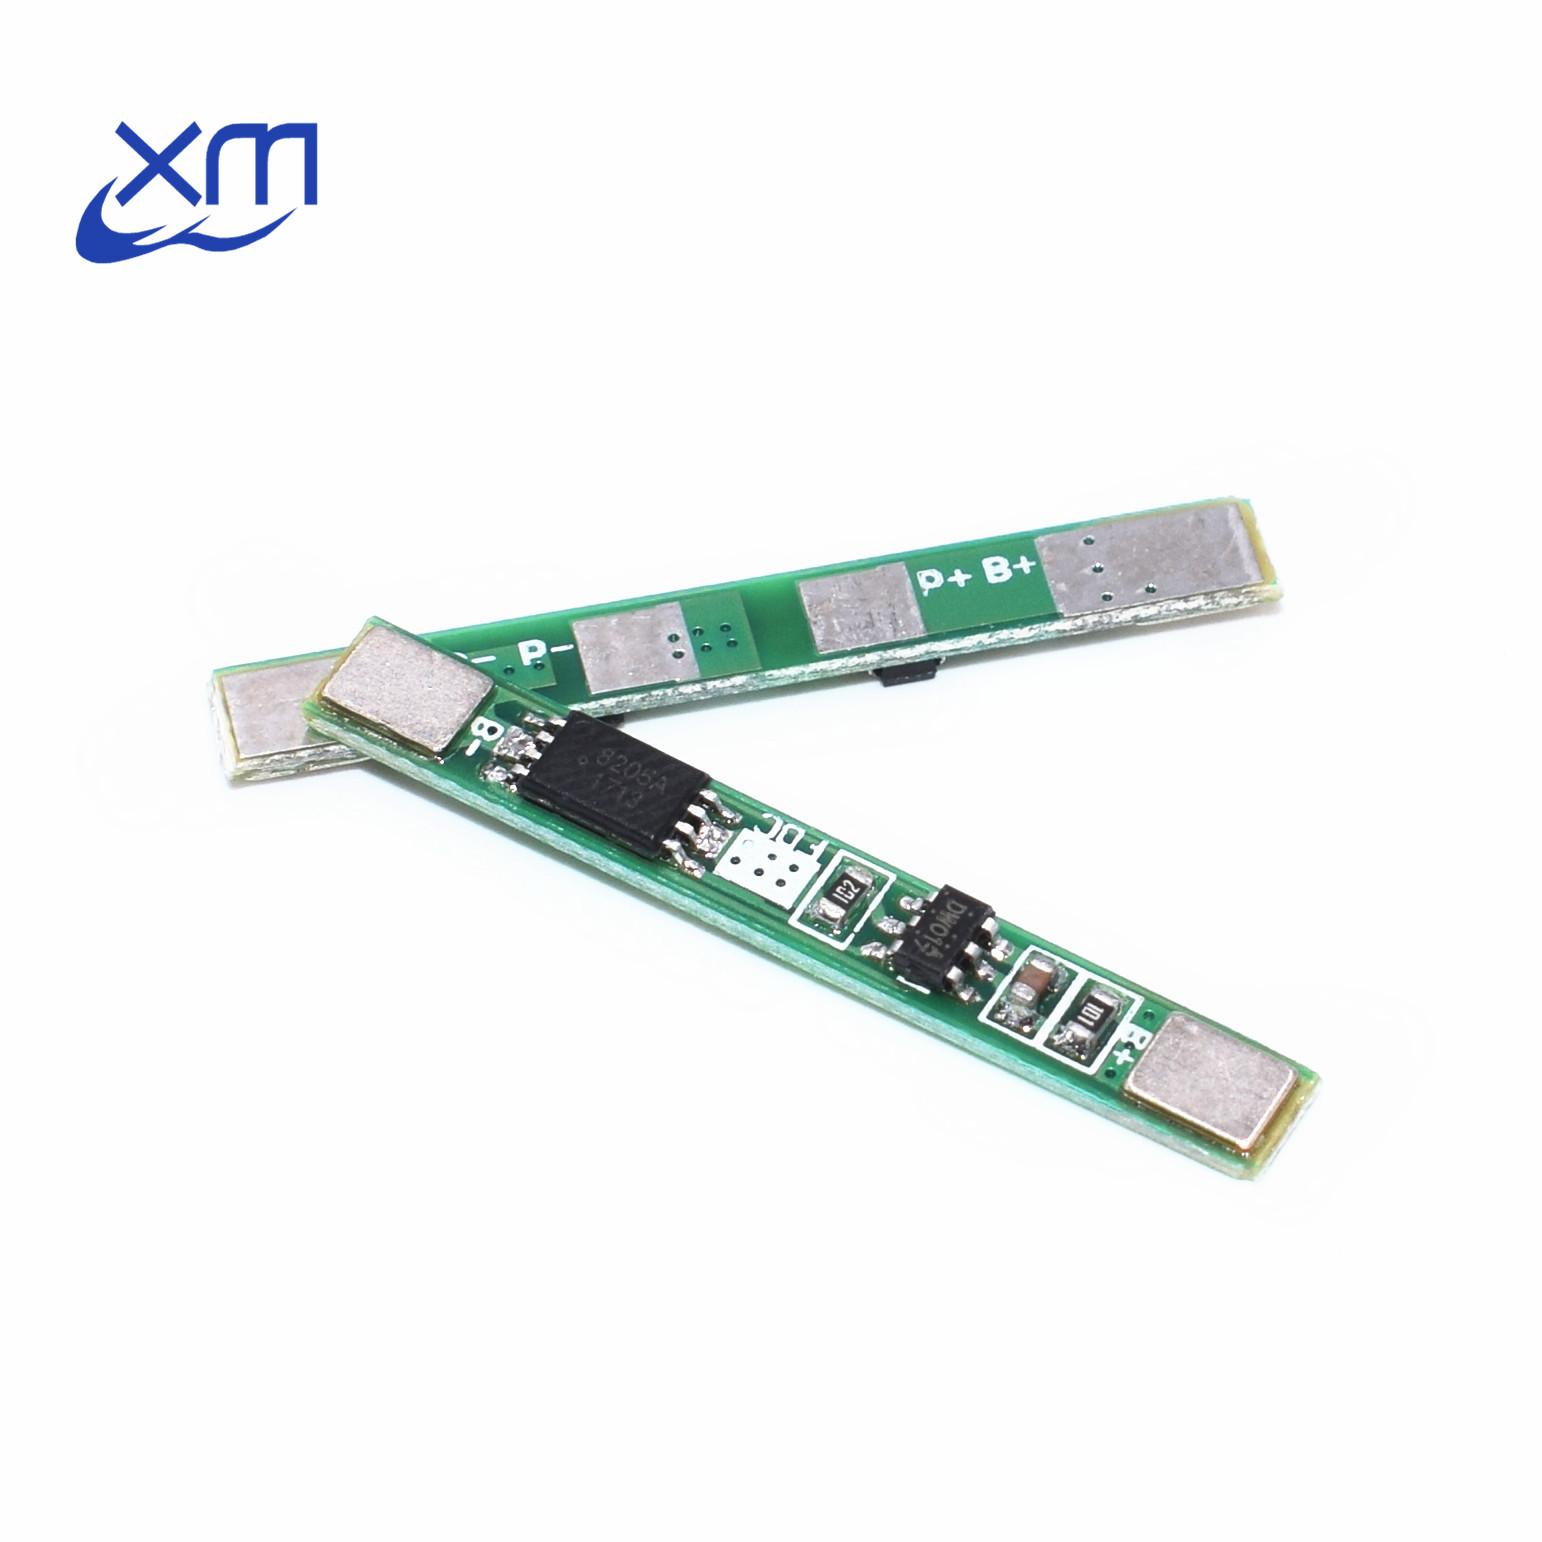 5PCS <font><b>1S</b></font> 3.7V 3A li-ion BMS PCM <font><b>battery</b></font> <font><b>protection</b></font> <font><b>board</b></font> pcm for 18650 lithium ion li <font><b>battery</b></font> I51 image